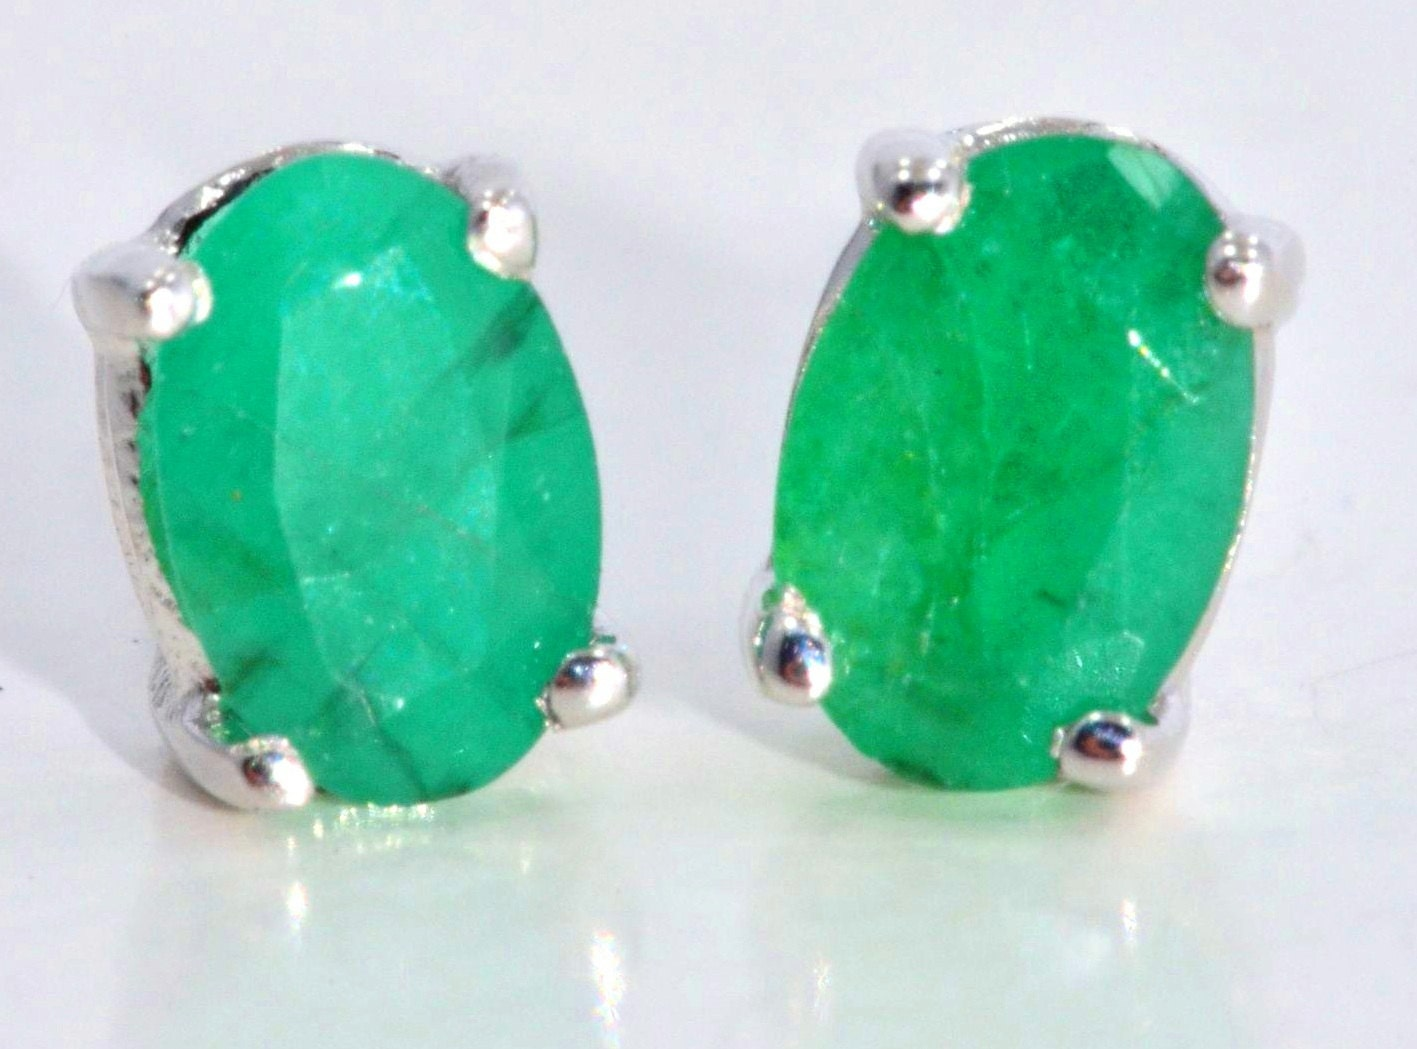 brass categories in emerald earrings atticus jewelry lg kendra stud default glass scott green